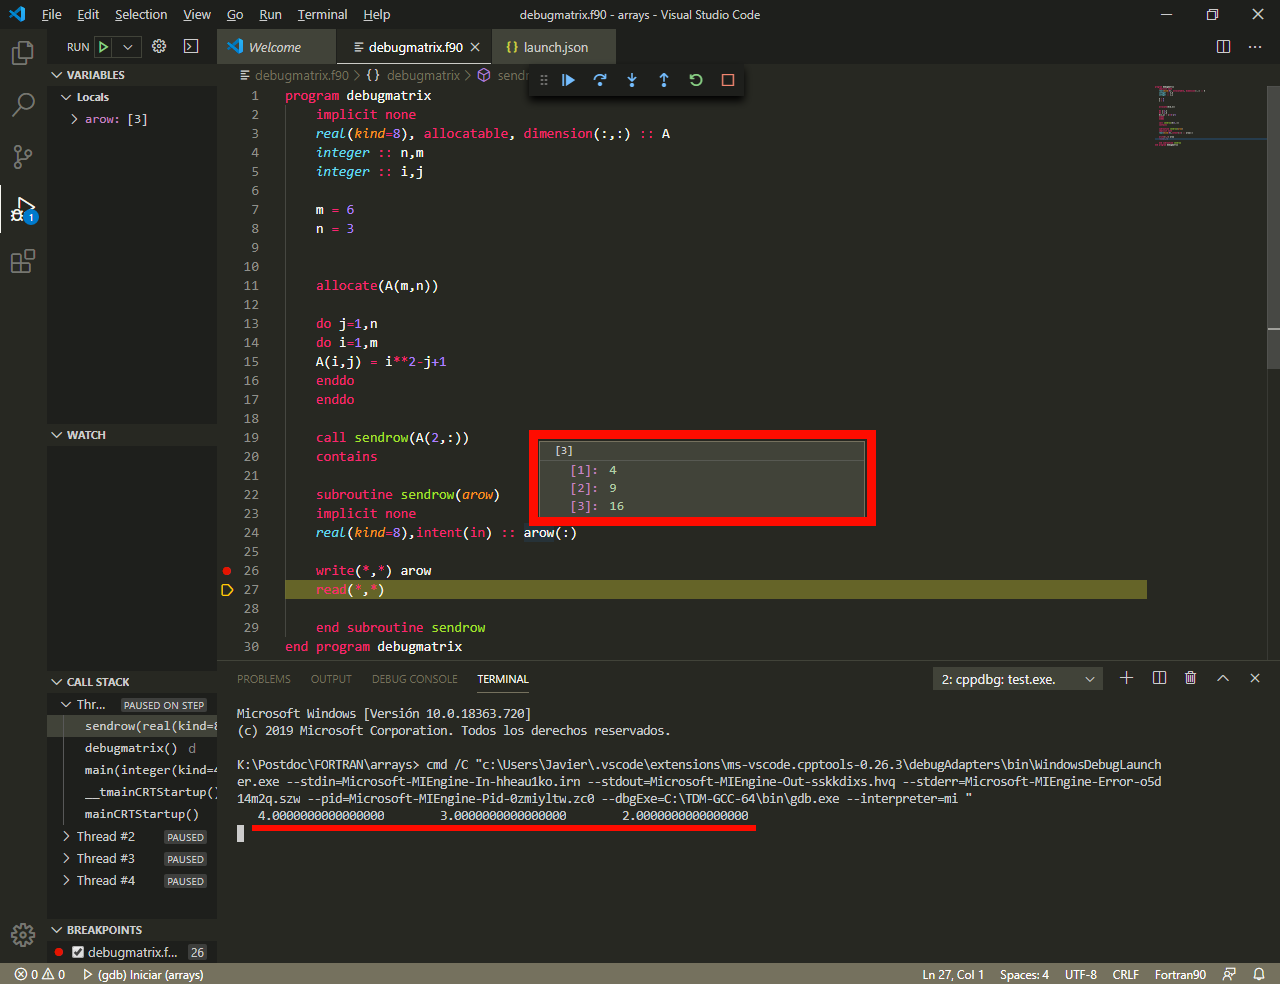 Fortran Gdb Debugging Wrong Array Values Issue Microsoft Vscode Github